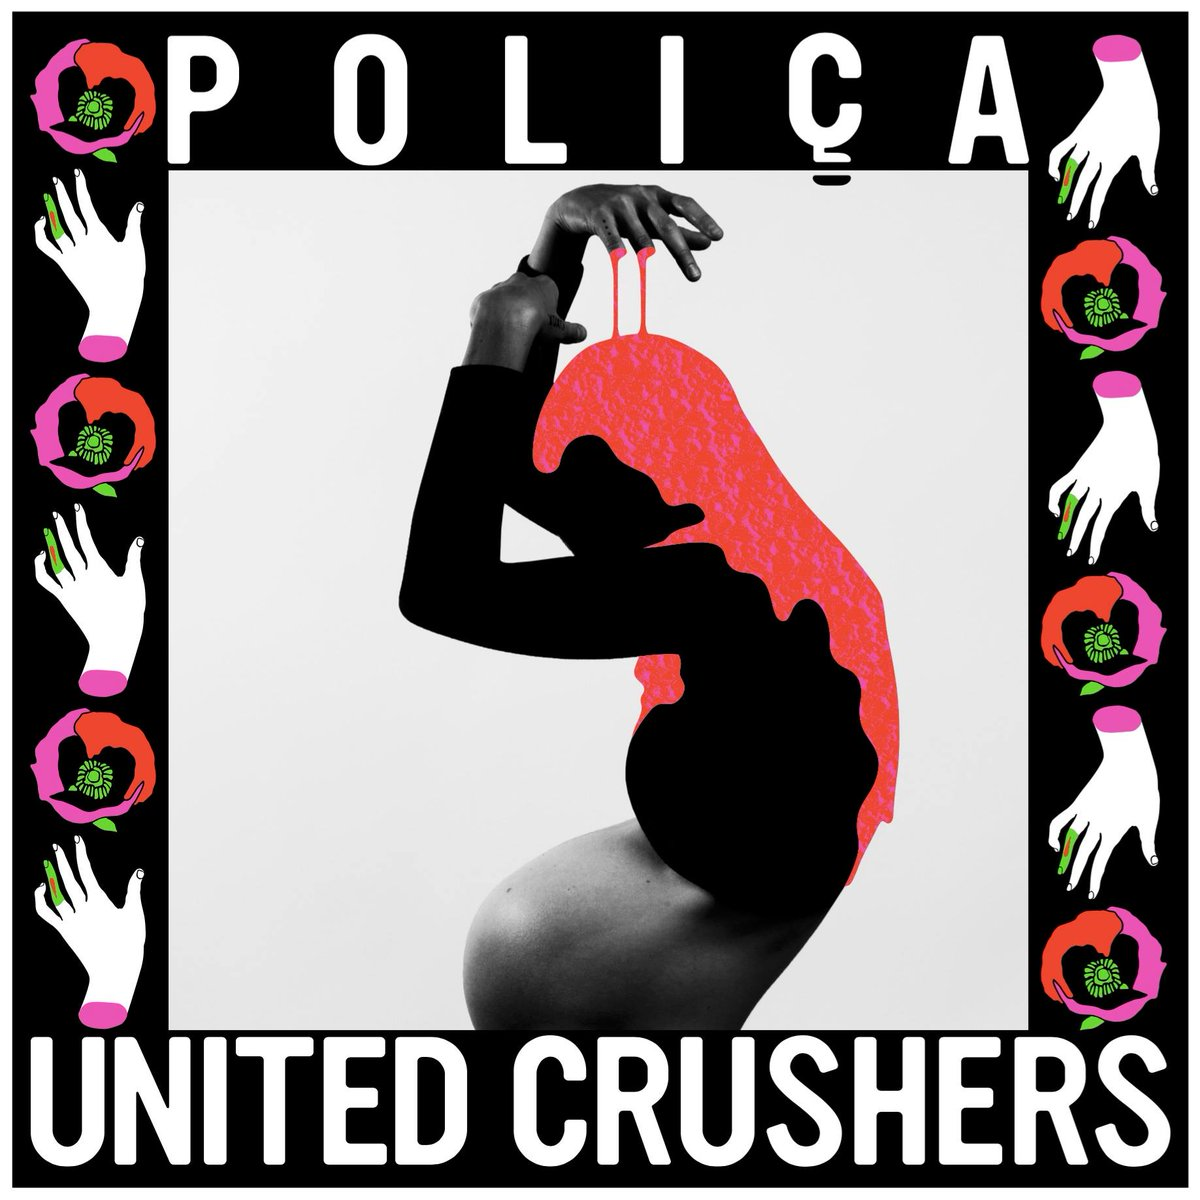 Listen to #UnitedCrushers via @nprmusic's First Listen before it's out next Friday! https://t.co/luruAEd36z https://t.co/hRi1CAEeF5